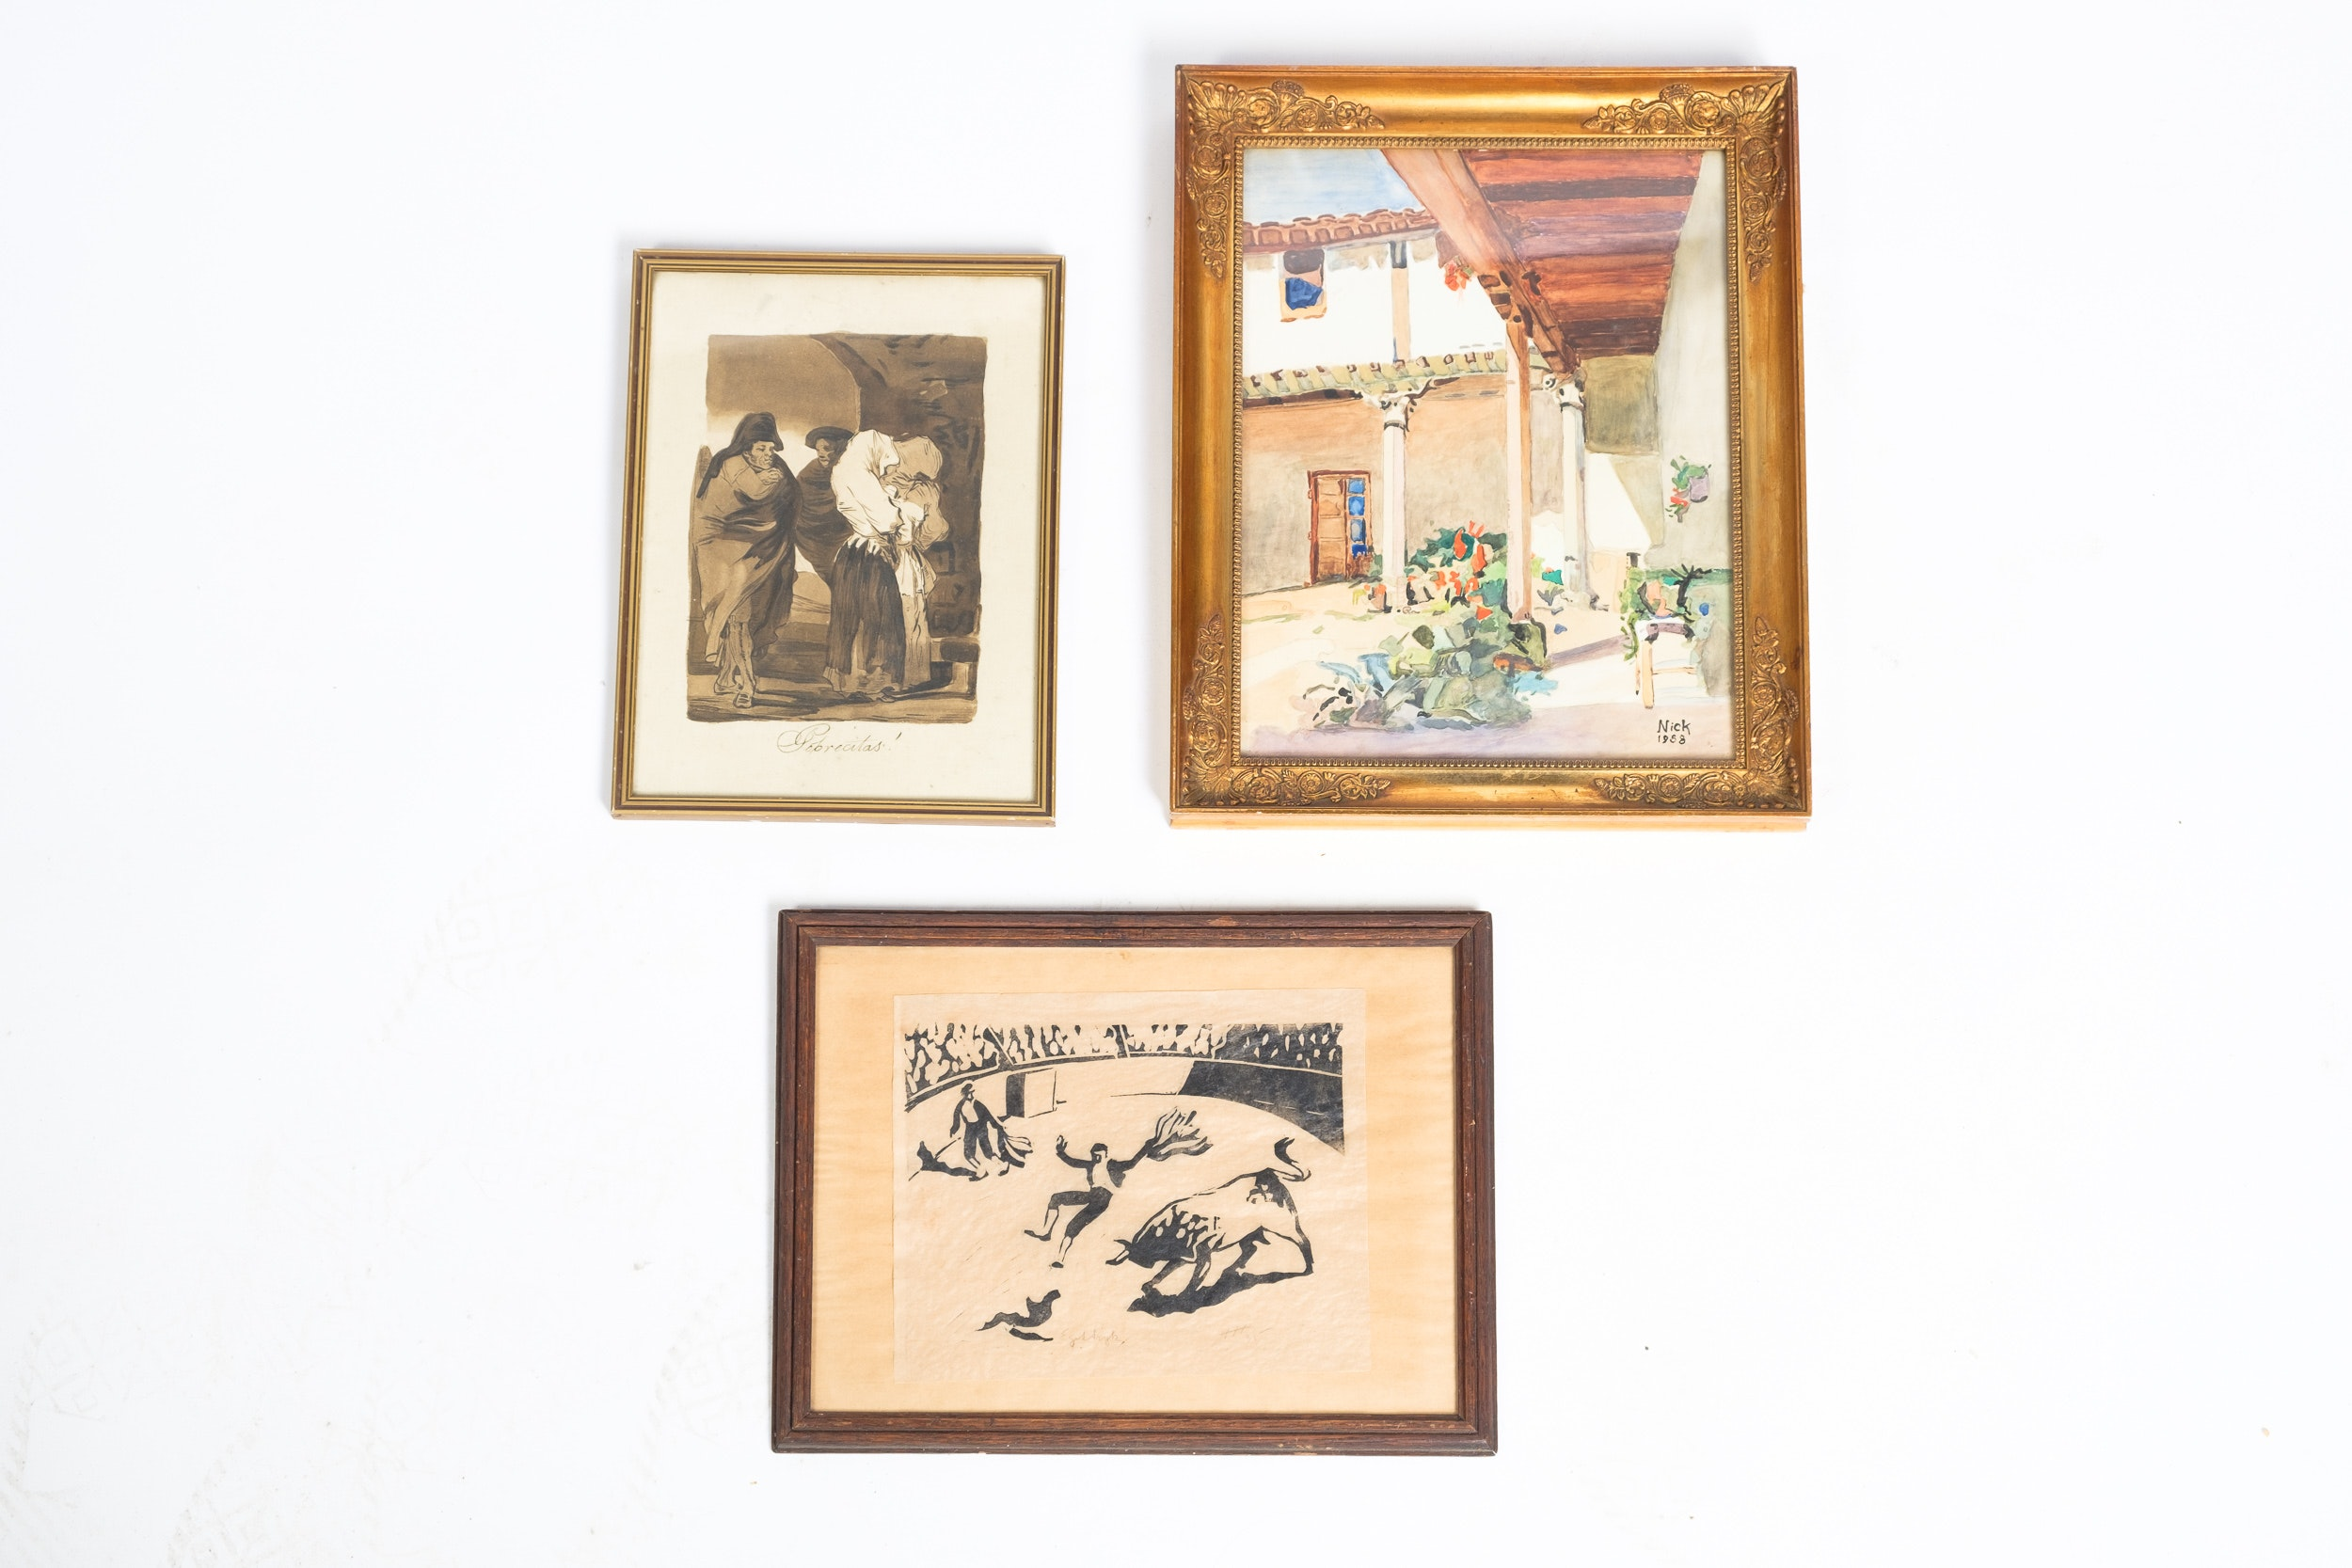 Prints and Watercolor Featuring Goya